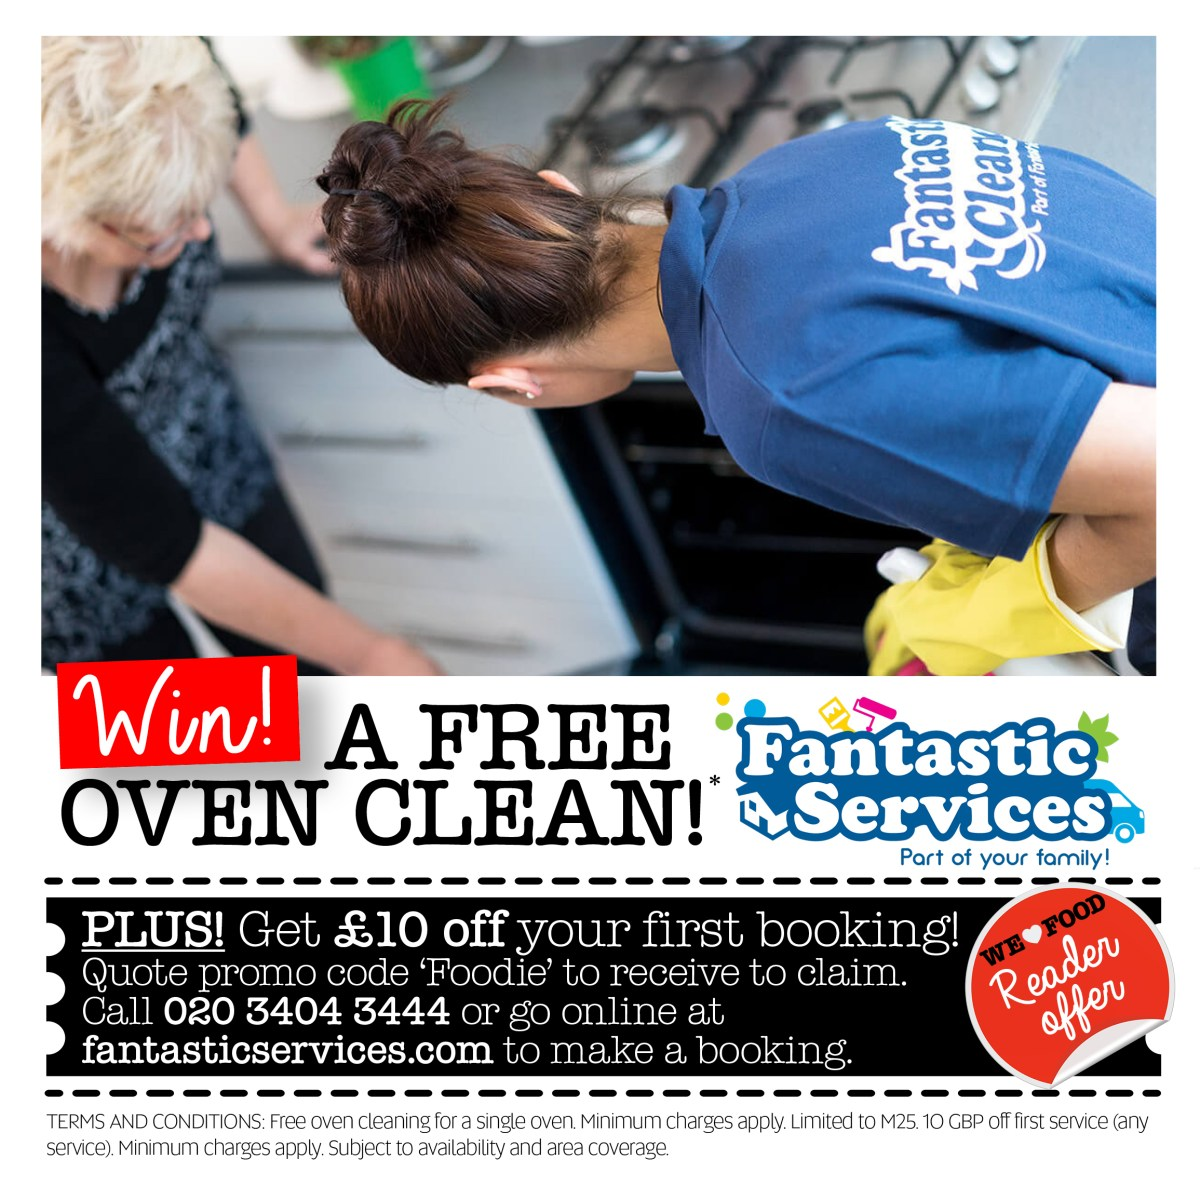 WIN A Free Oven Clean* With Fantastic Services & £10 Off Your First Booking!!